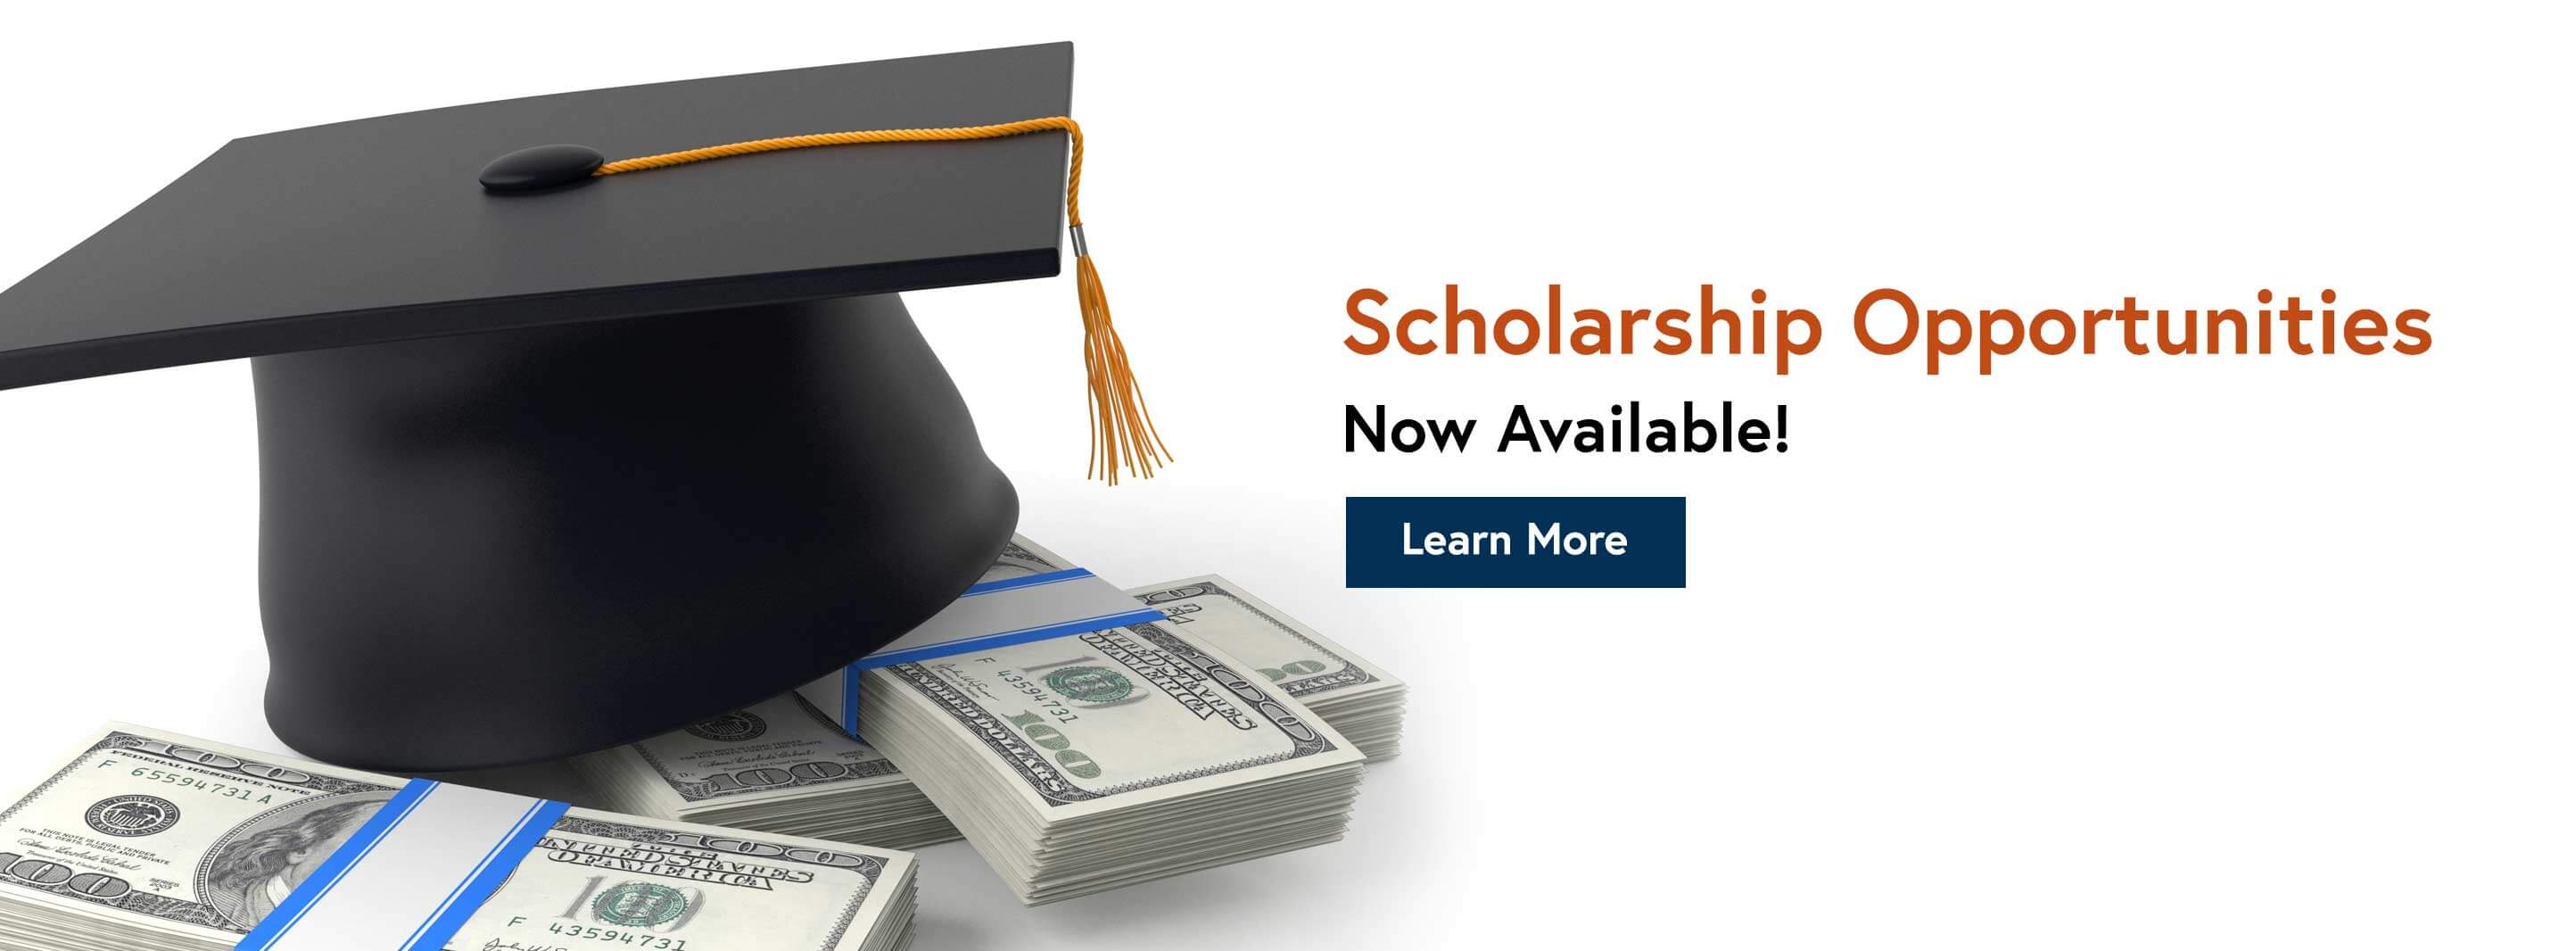 Scholarship Opportunities now available! Learn More.